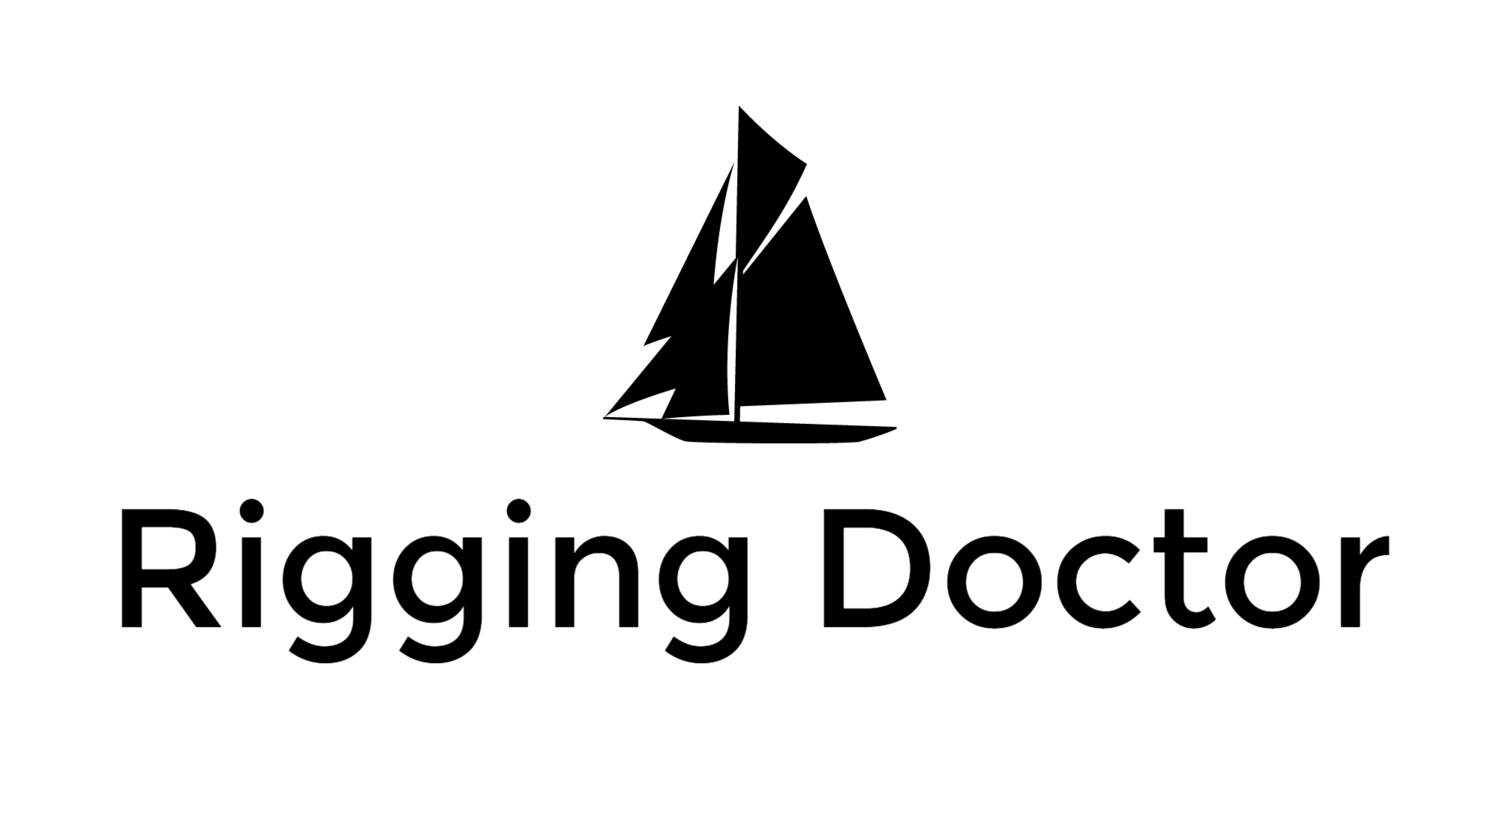 Rigging Doctor